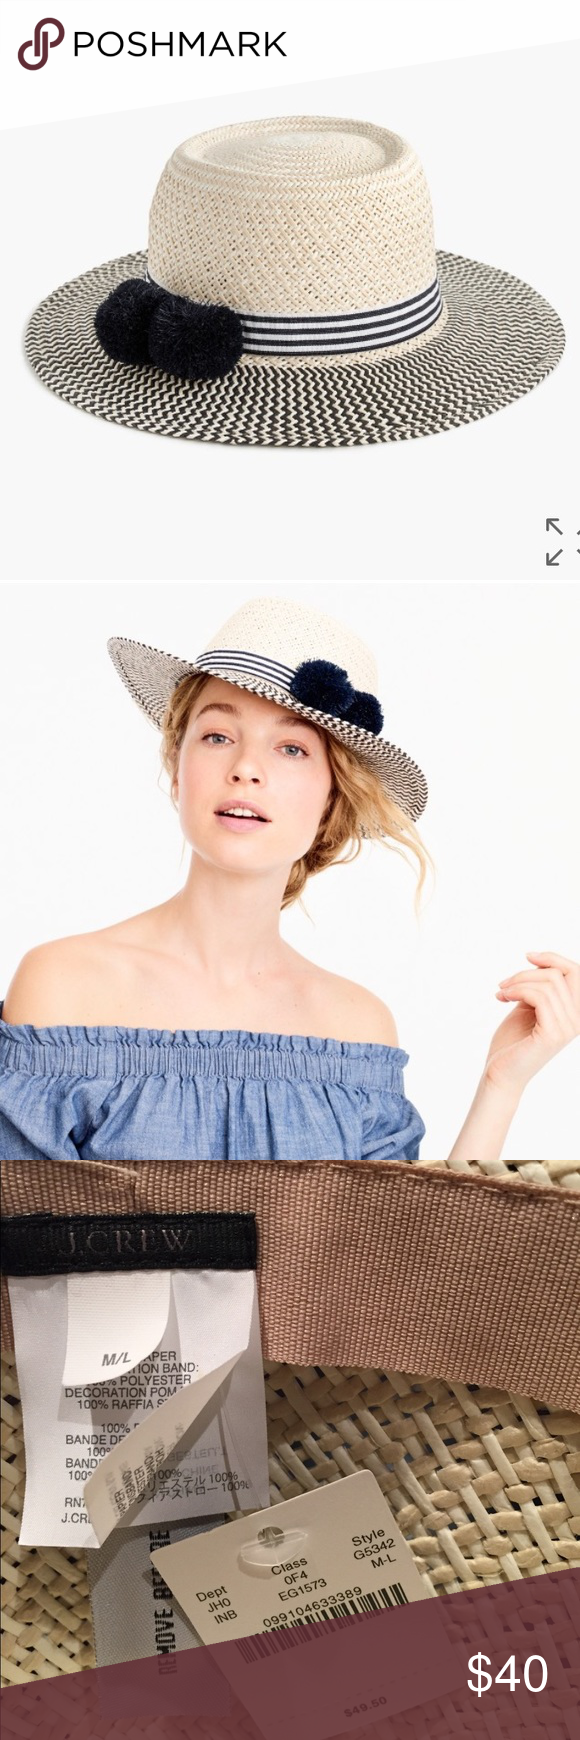 J. Crew Straw Hat with Pom Poms Straw hat 17fae8181fcb